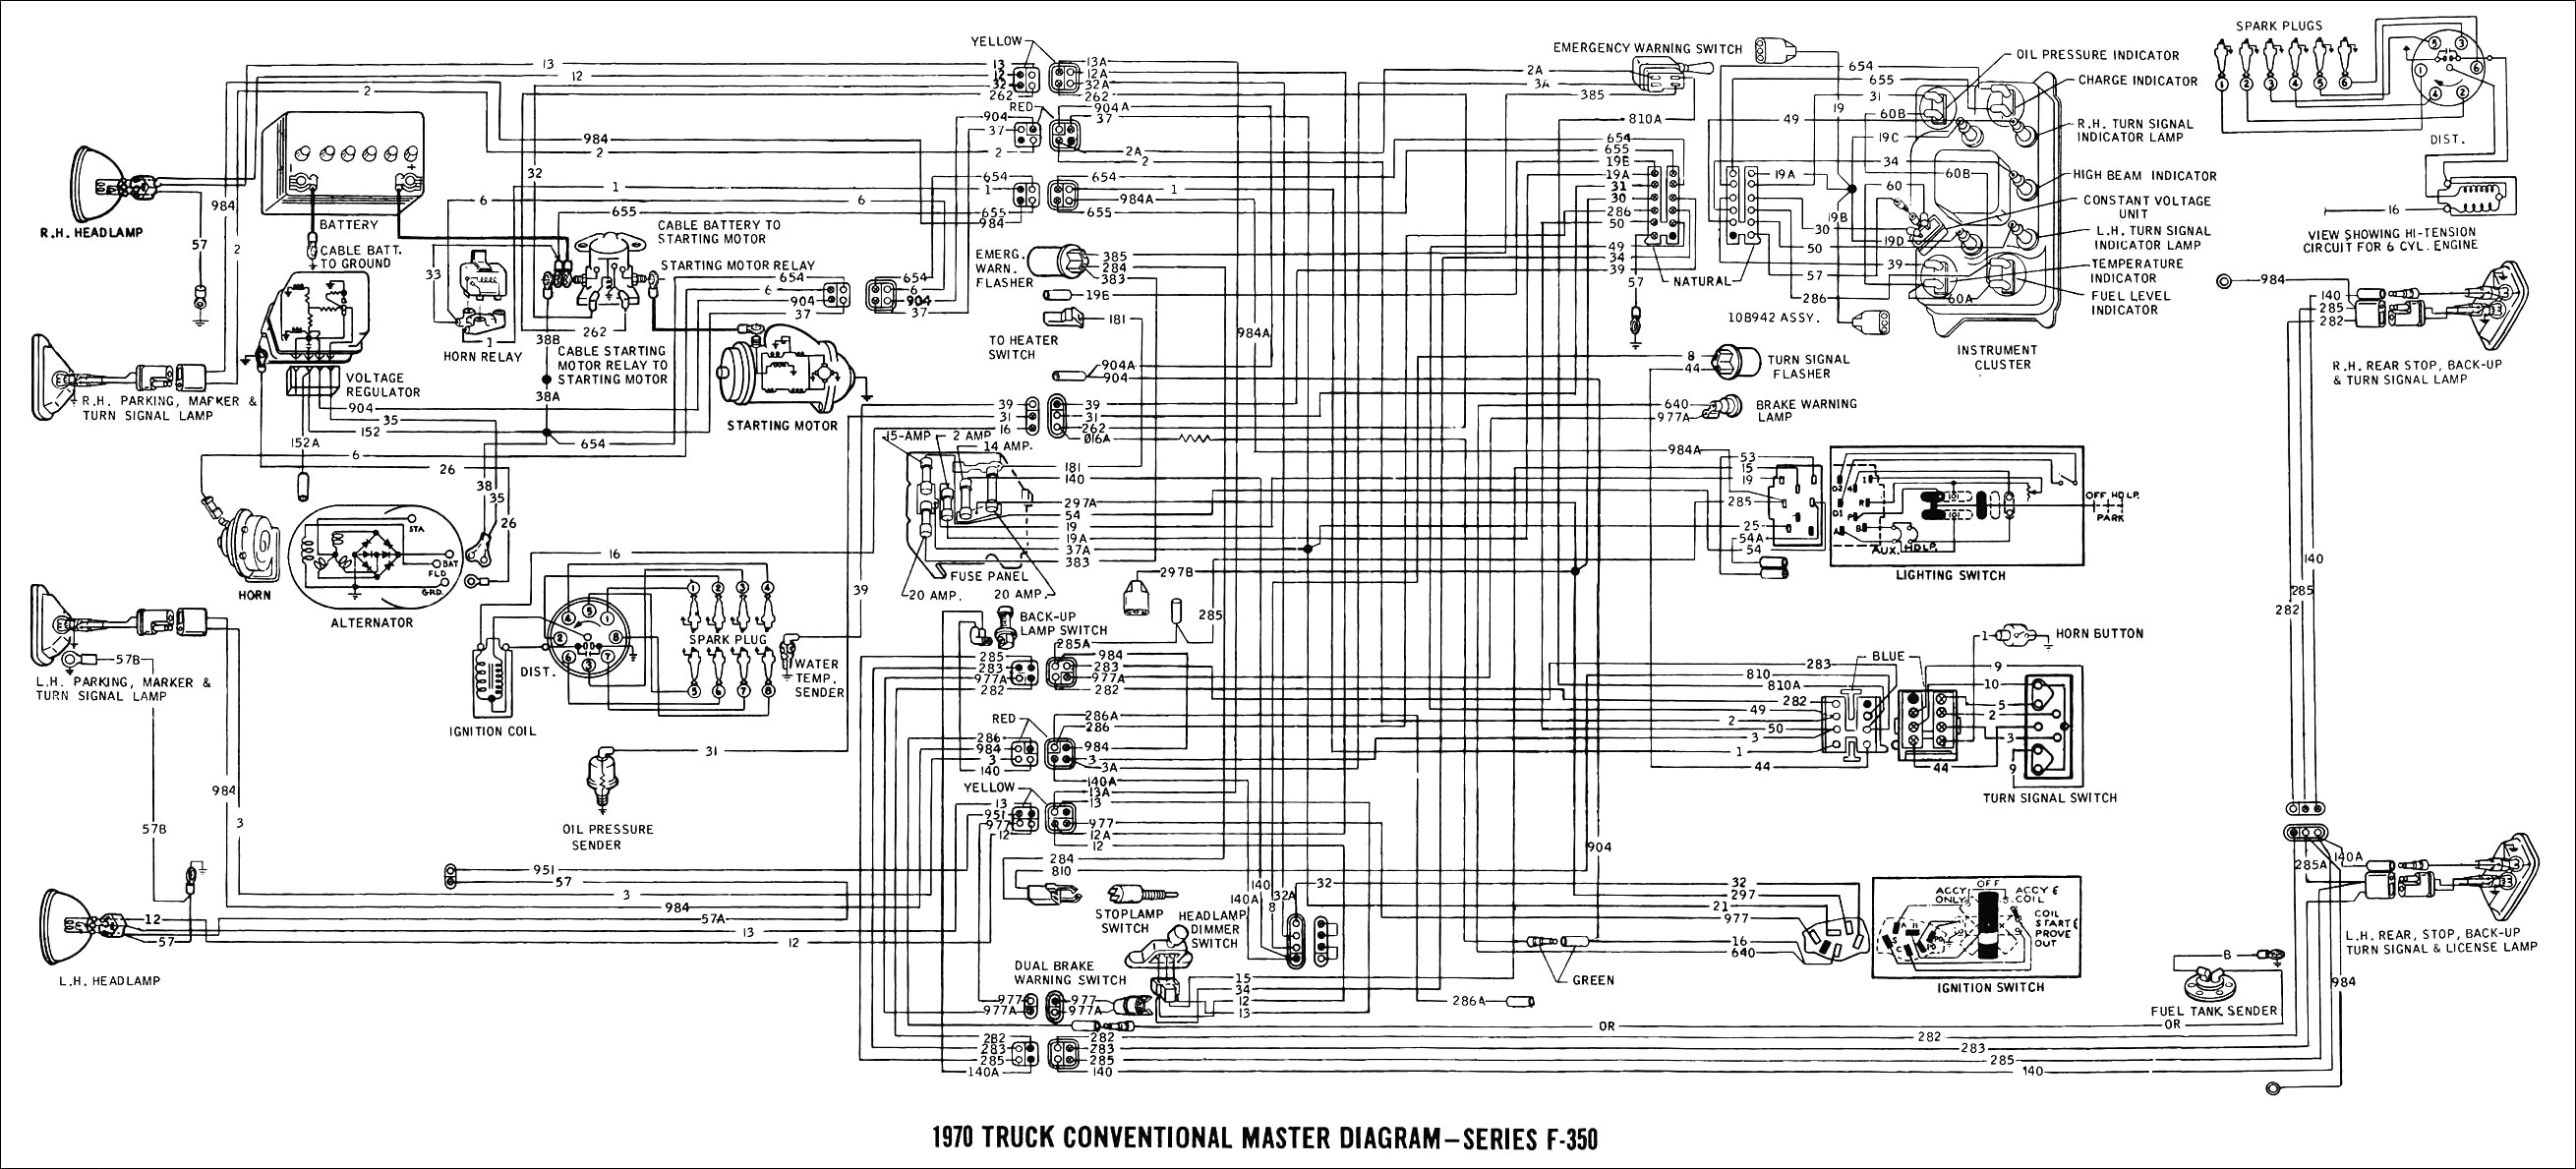 2002 ford Explorer Engine Diagram 4 0 I Need the Wiring Diagram for A 1996 ford Explorer Radio 1997 Also Of 2002 ford Explorer Engine Diagram 4 0